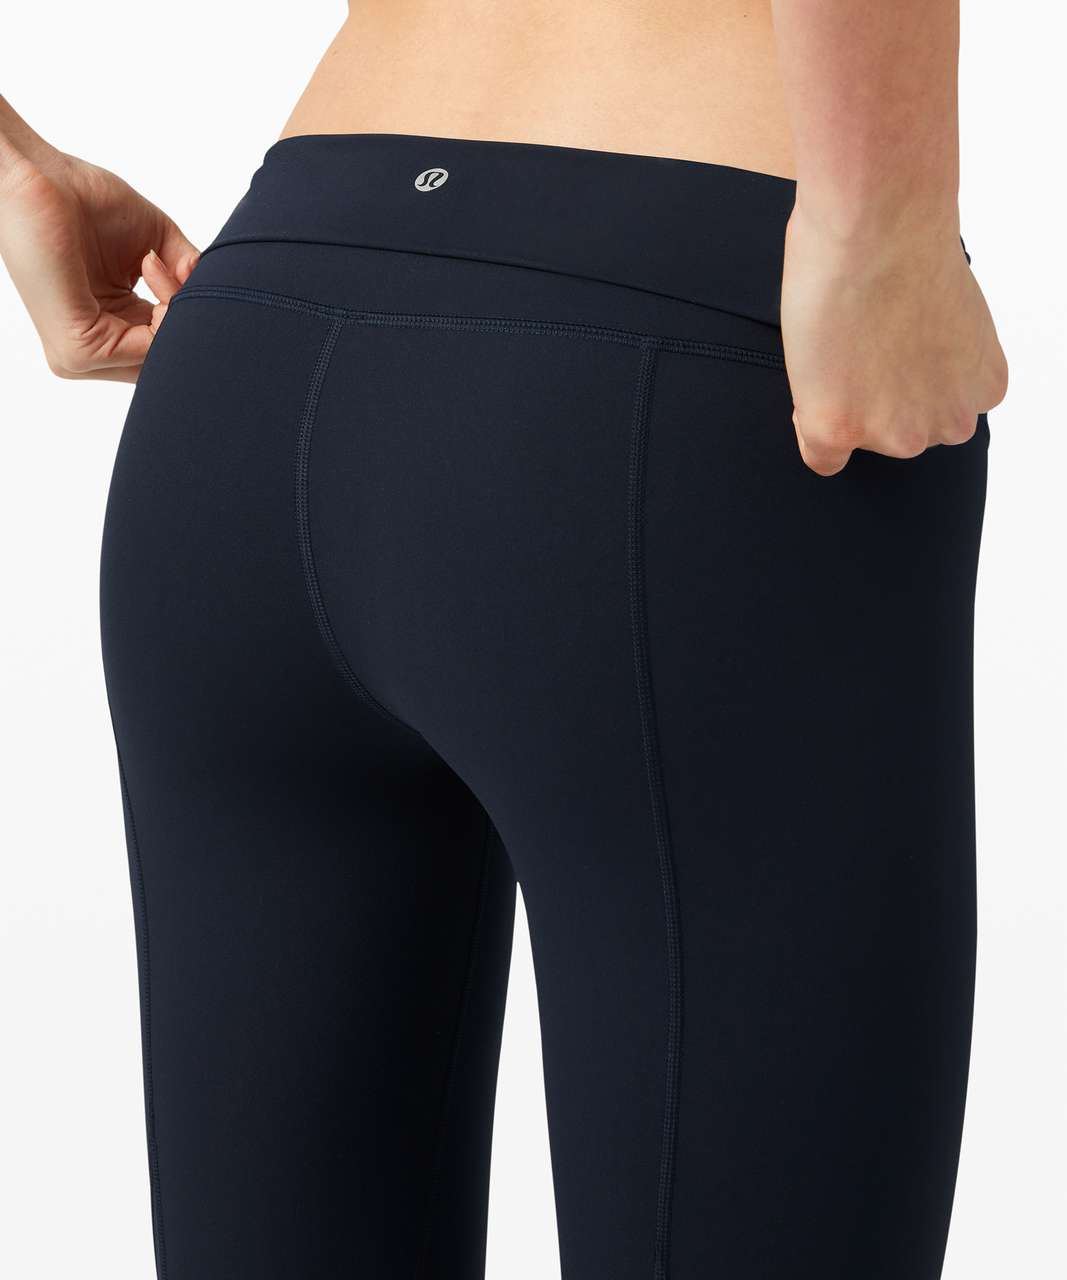 "Lululemon Wunder Under Crop High-Rise *Roll Down Scallop Full-On Luxtreme 23"" - True Navy"